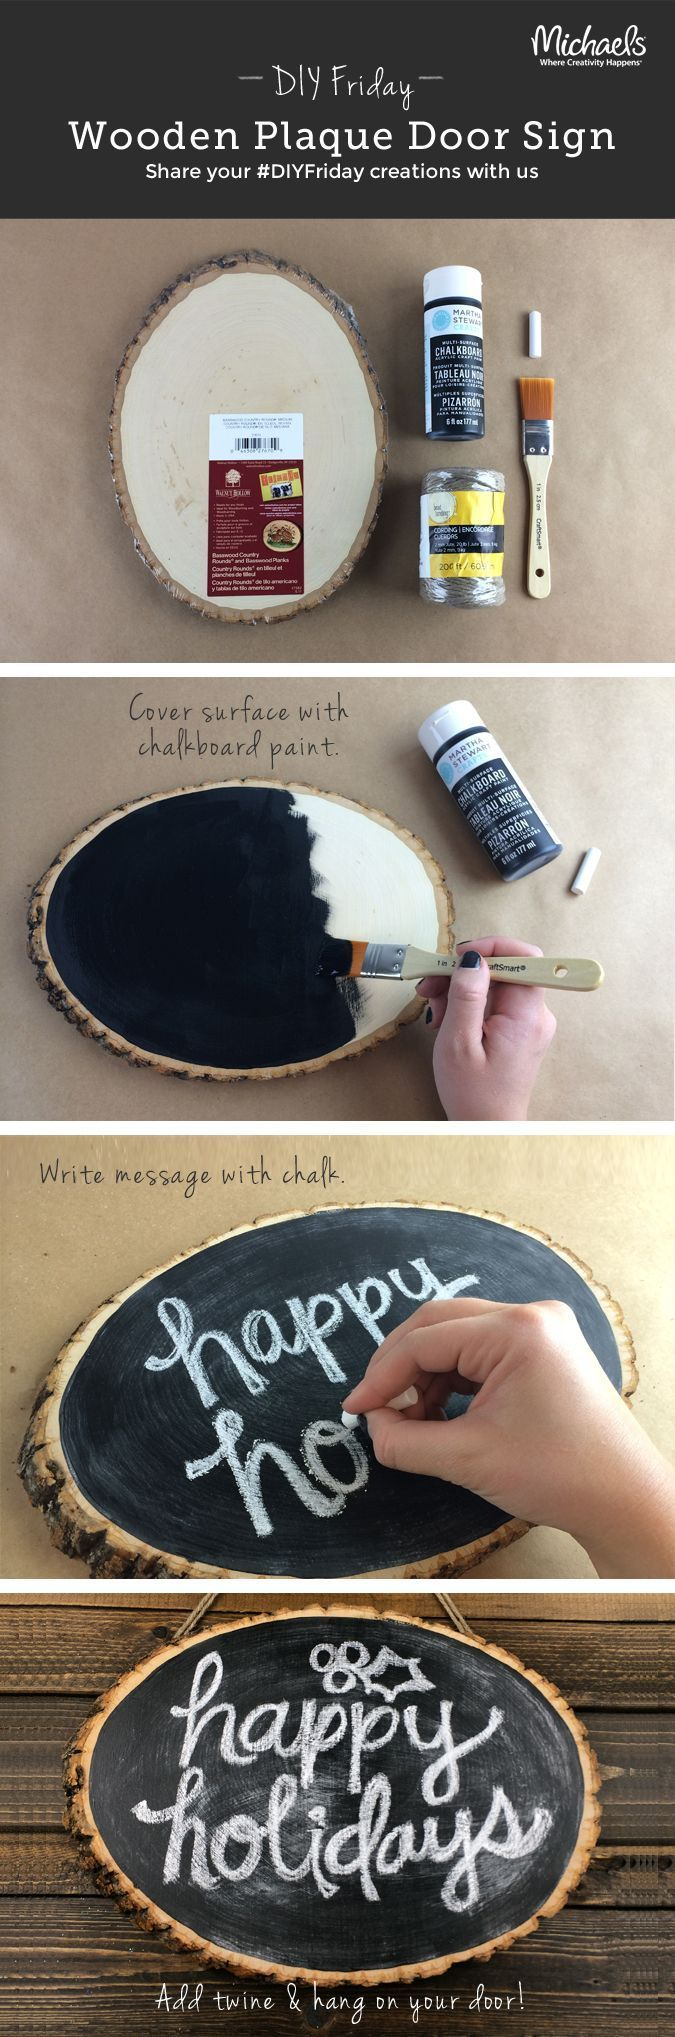 DIY customizable sign for the holidays! Use this DIY as a gift that your friends and family will love year-round.